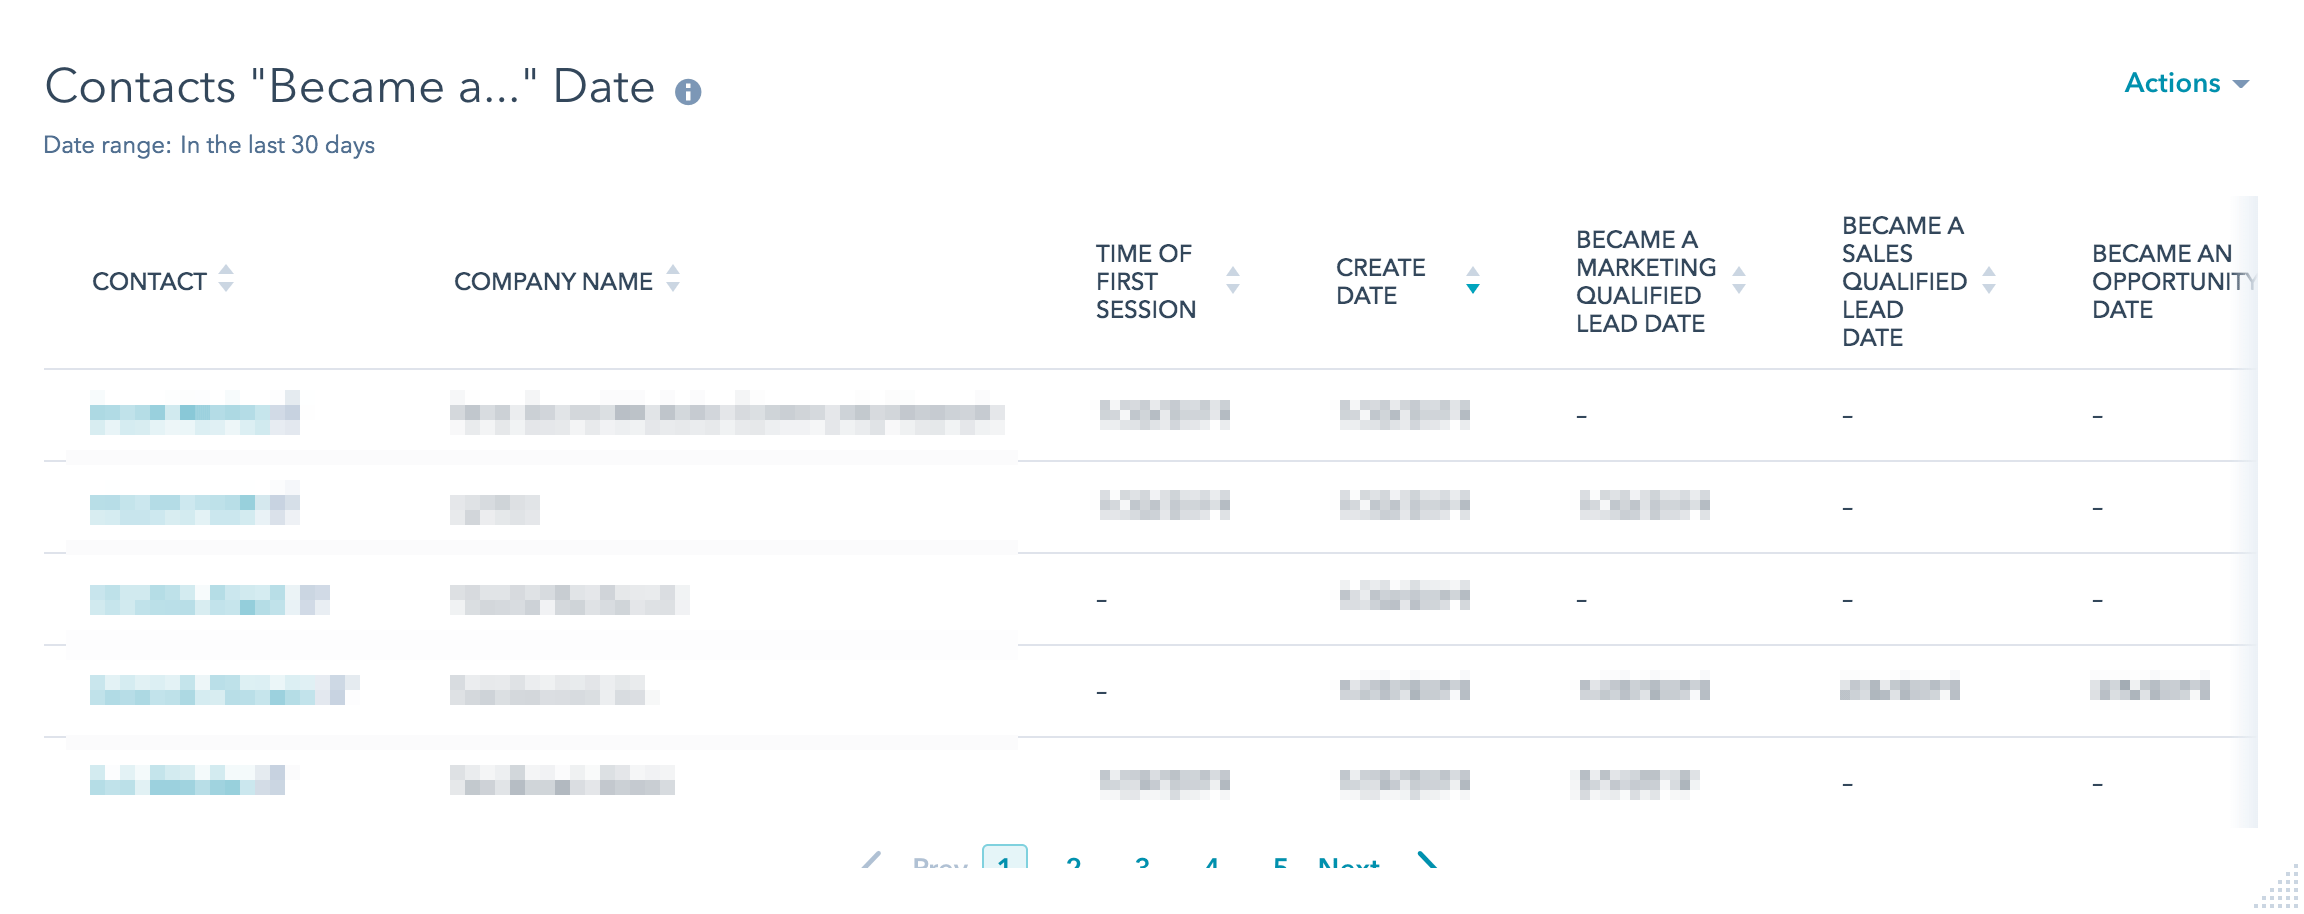 hubspot-report-contacts-became-a-date